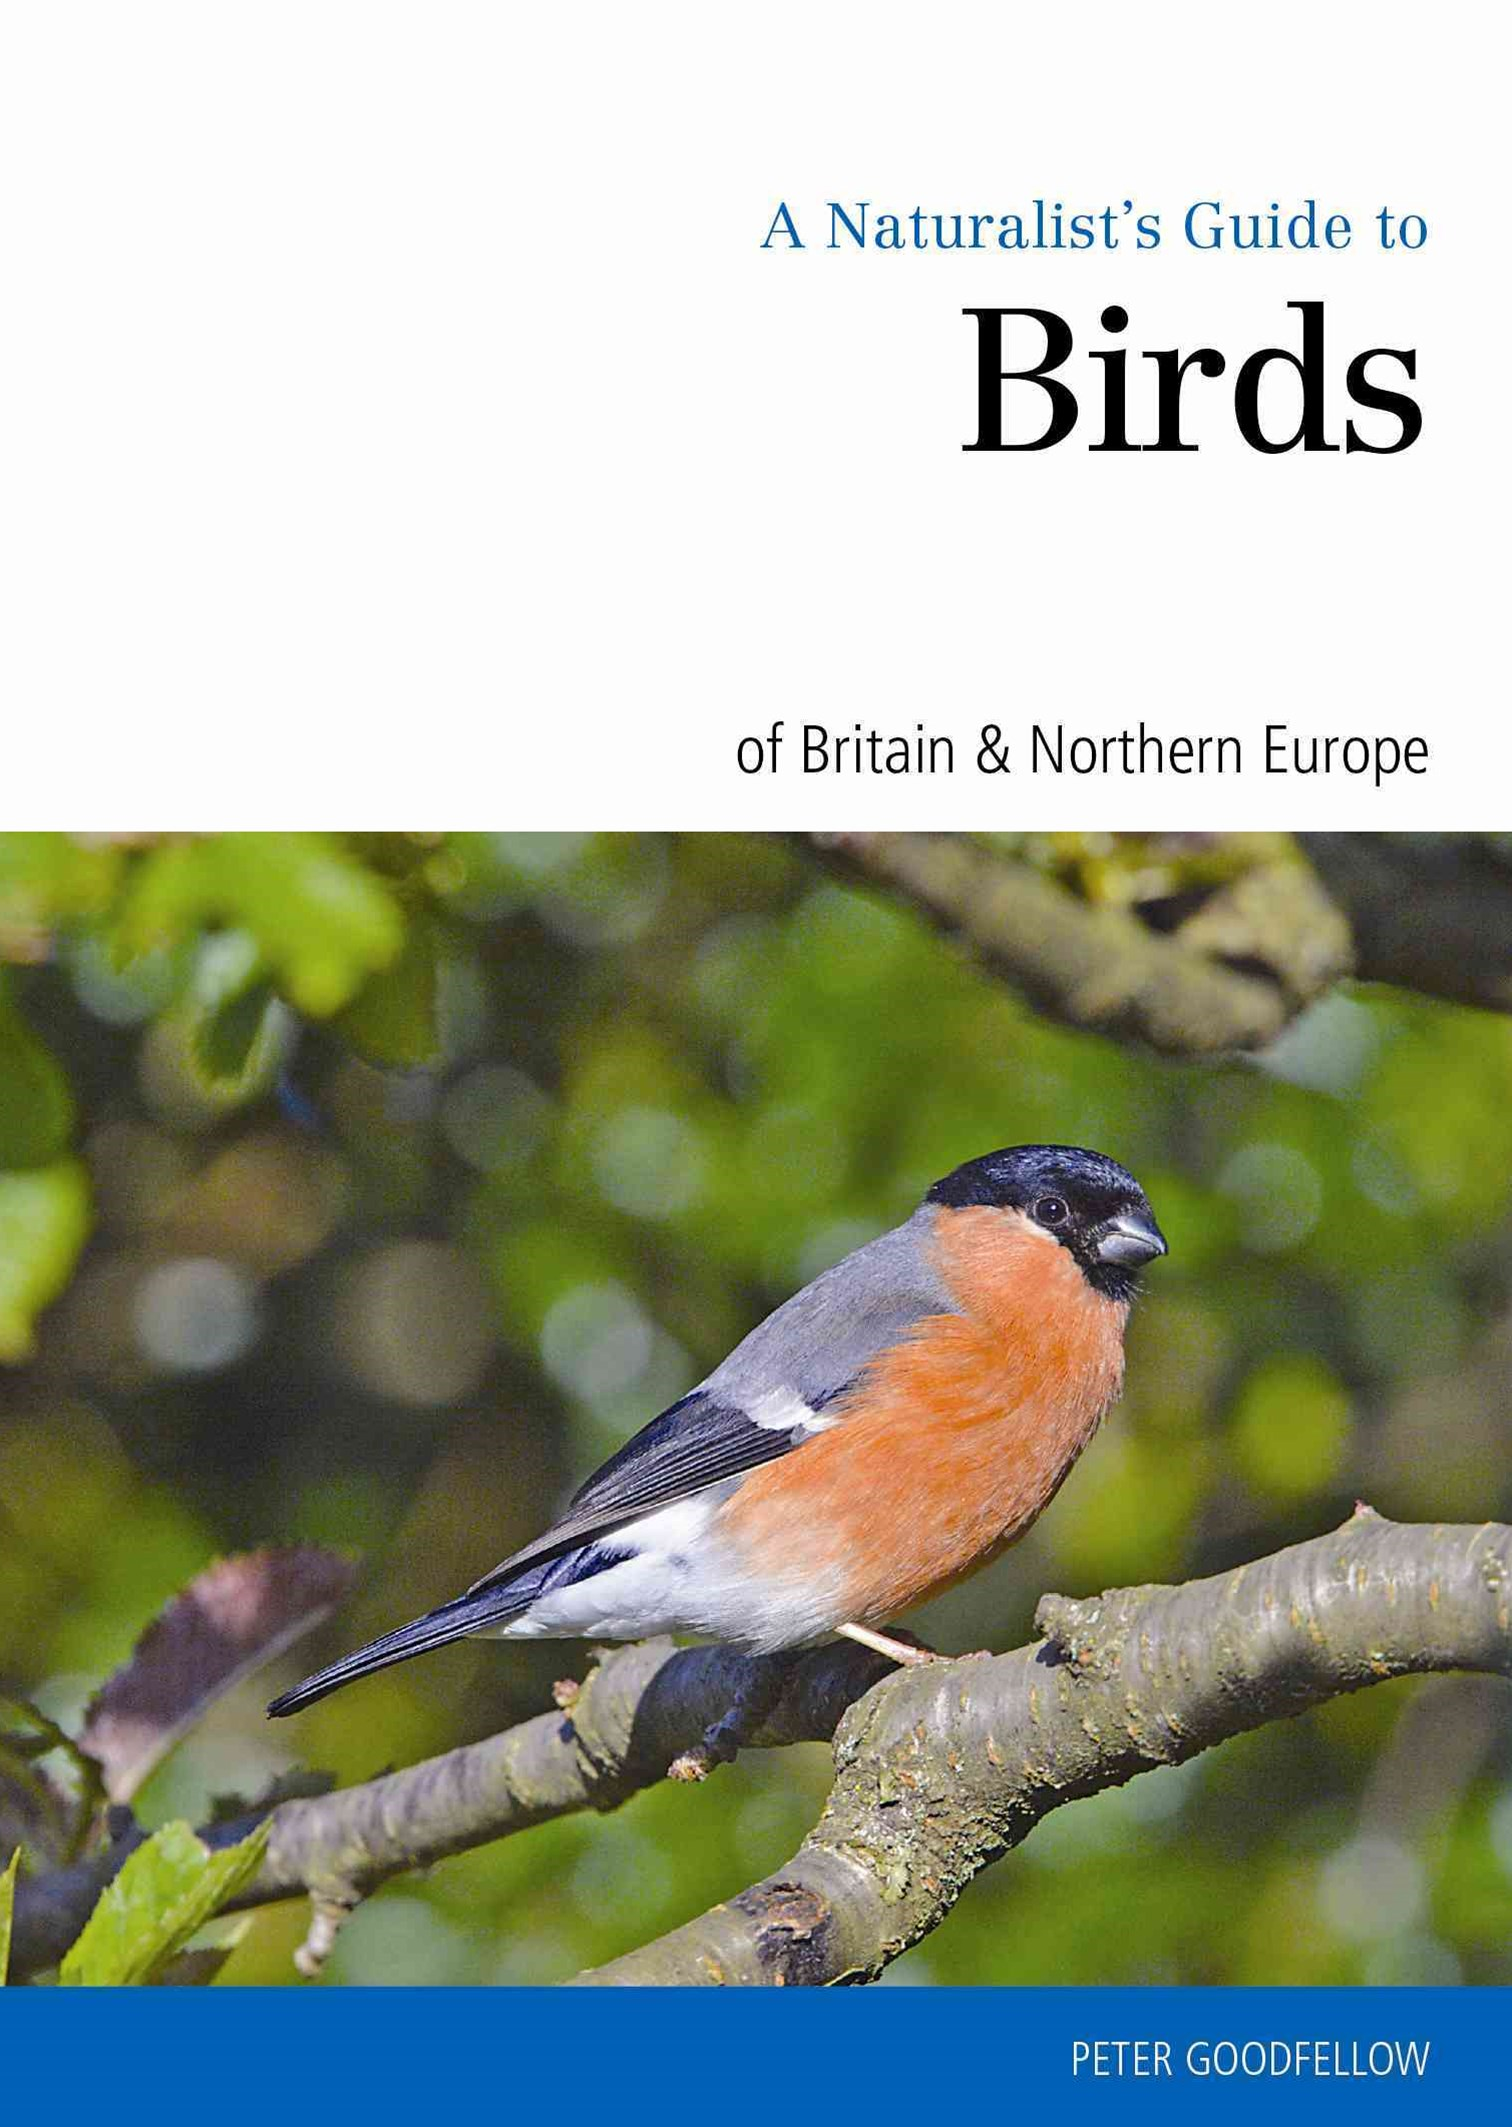 Naturalist's Guide to the Birds of Britain & Northern Ireland